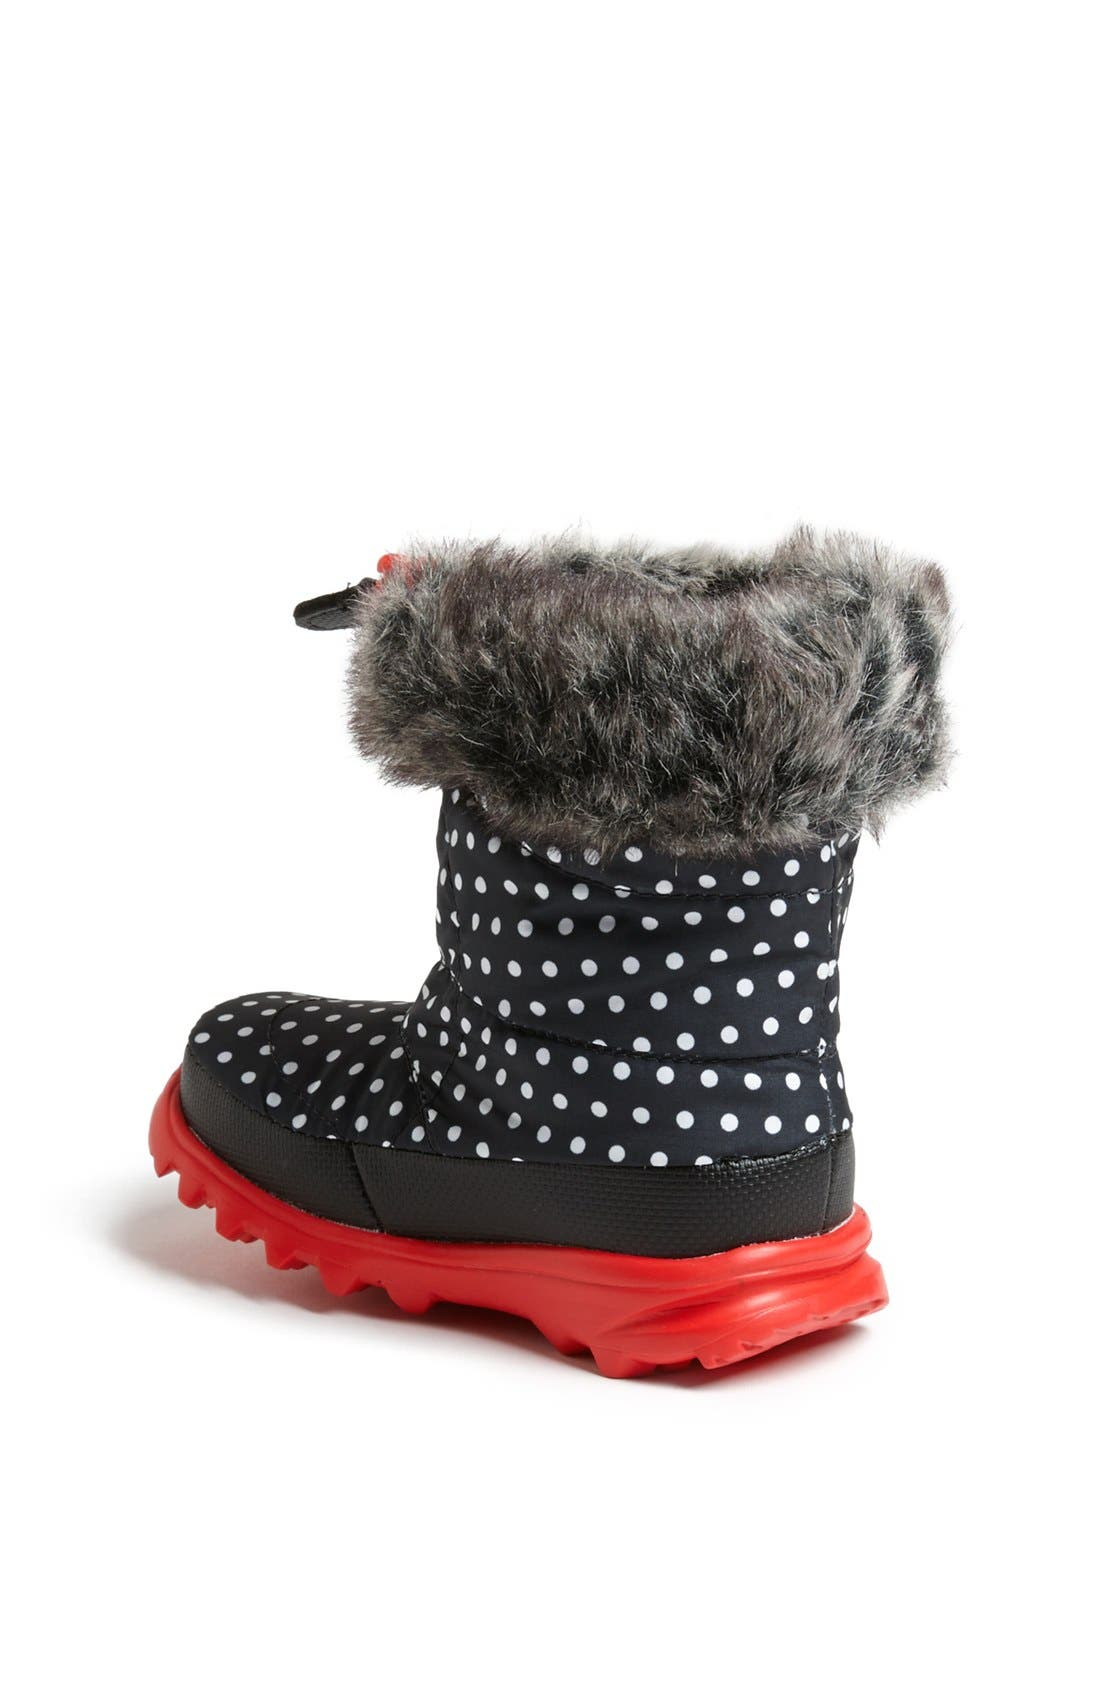 Alternate Image 2  - The North Face 'Nuptse Fur II' Winter Boot (Walker & Toddler)